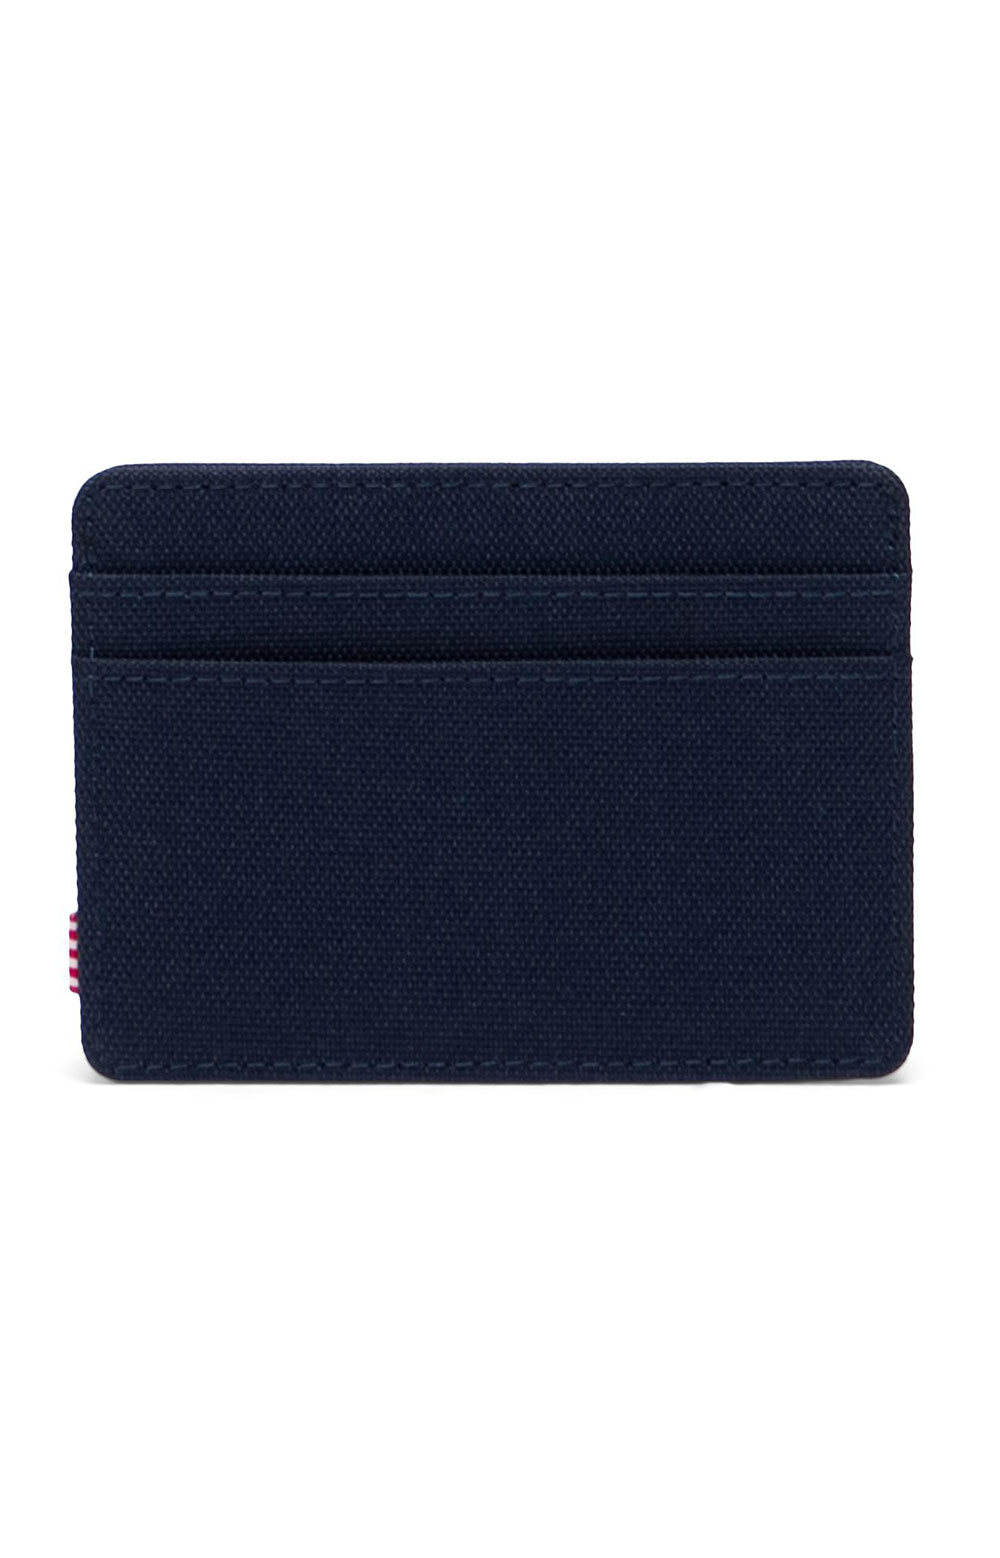 Charlie Wallet - Peacoat/Cyber Yellow 3